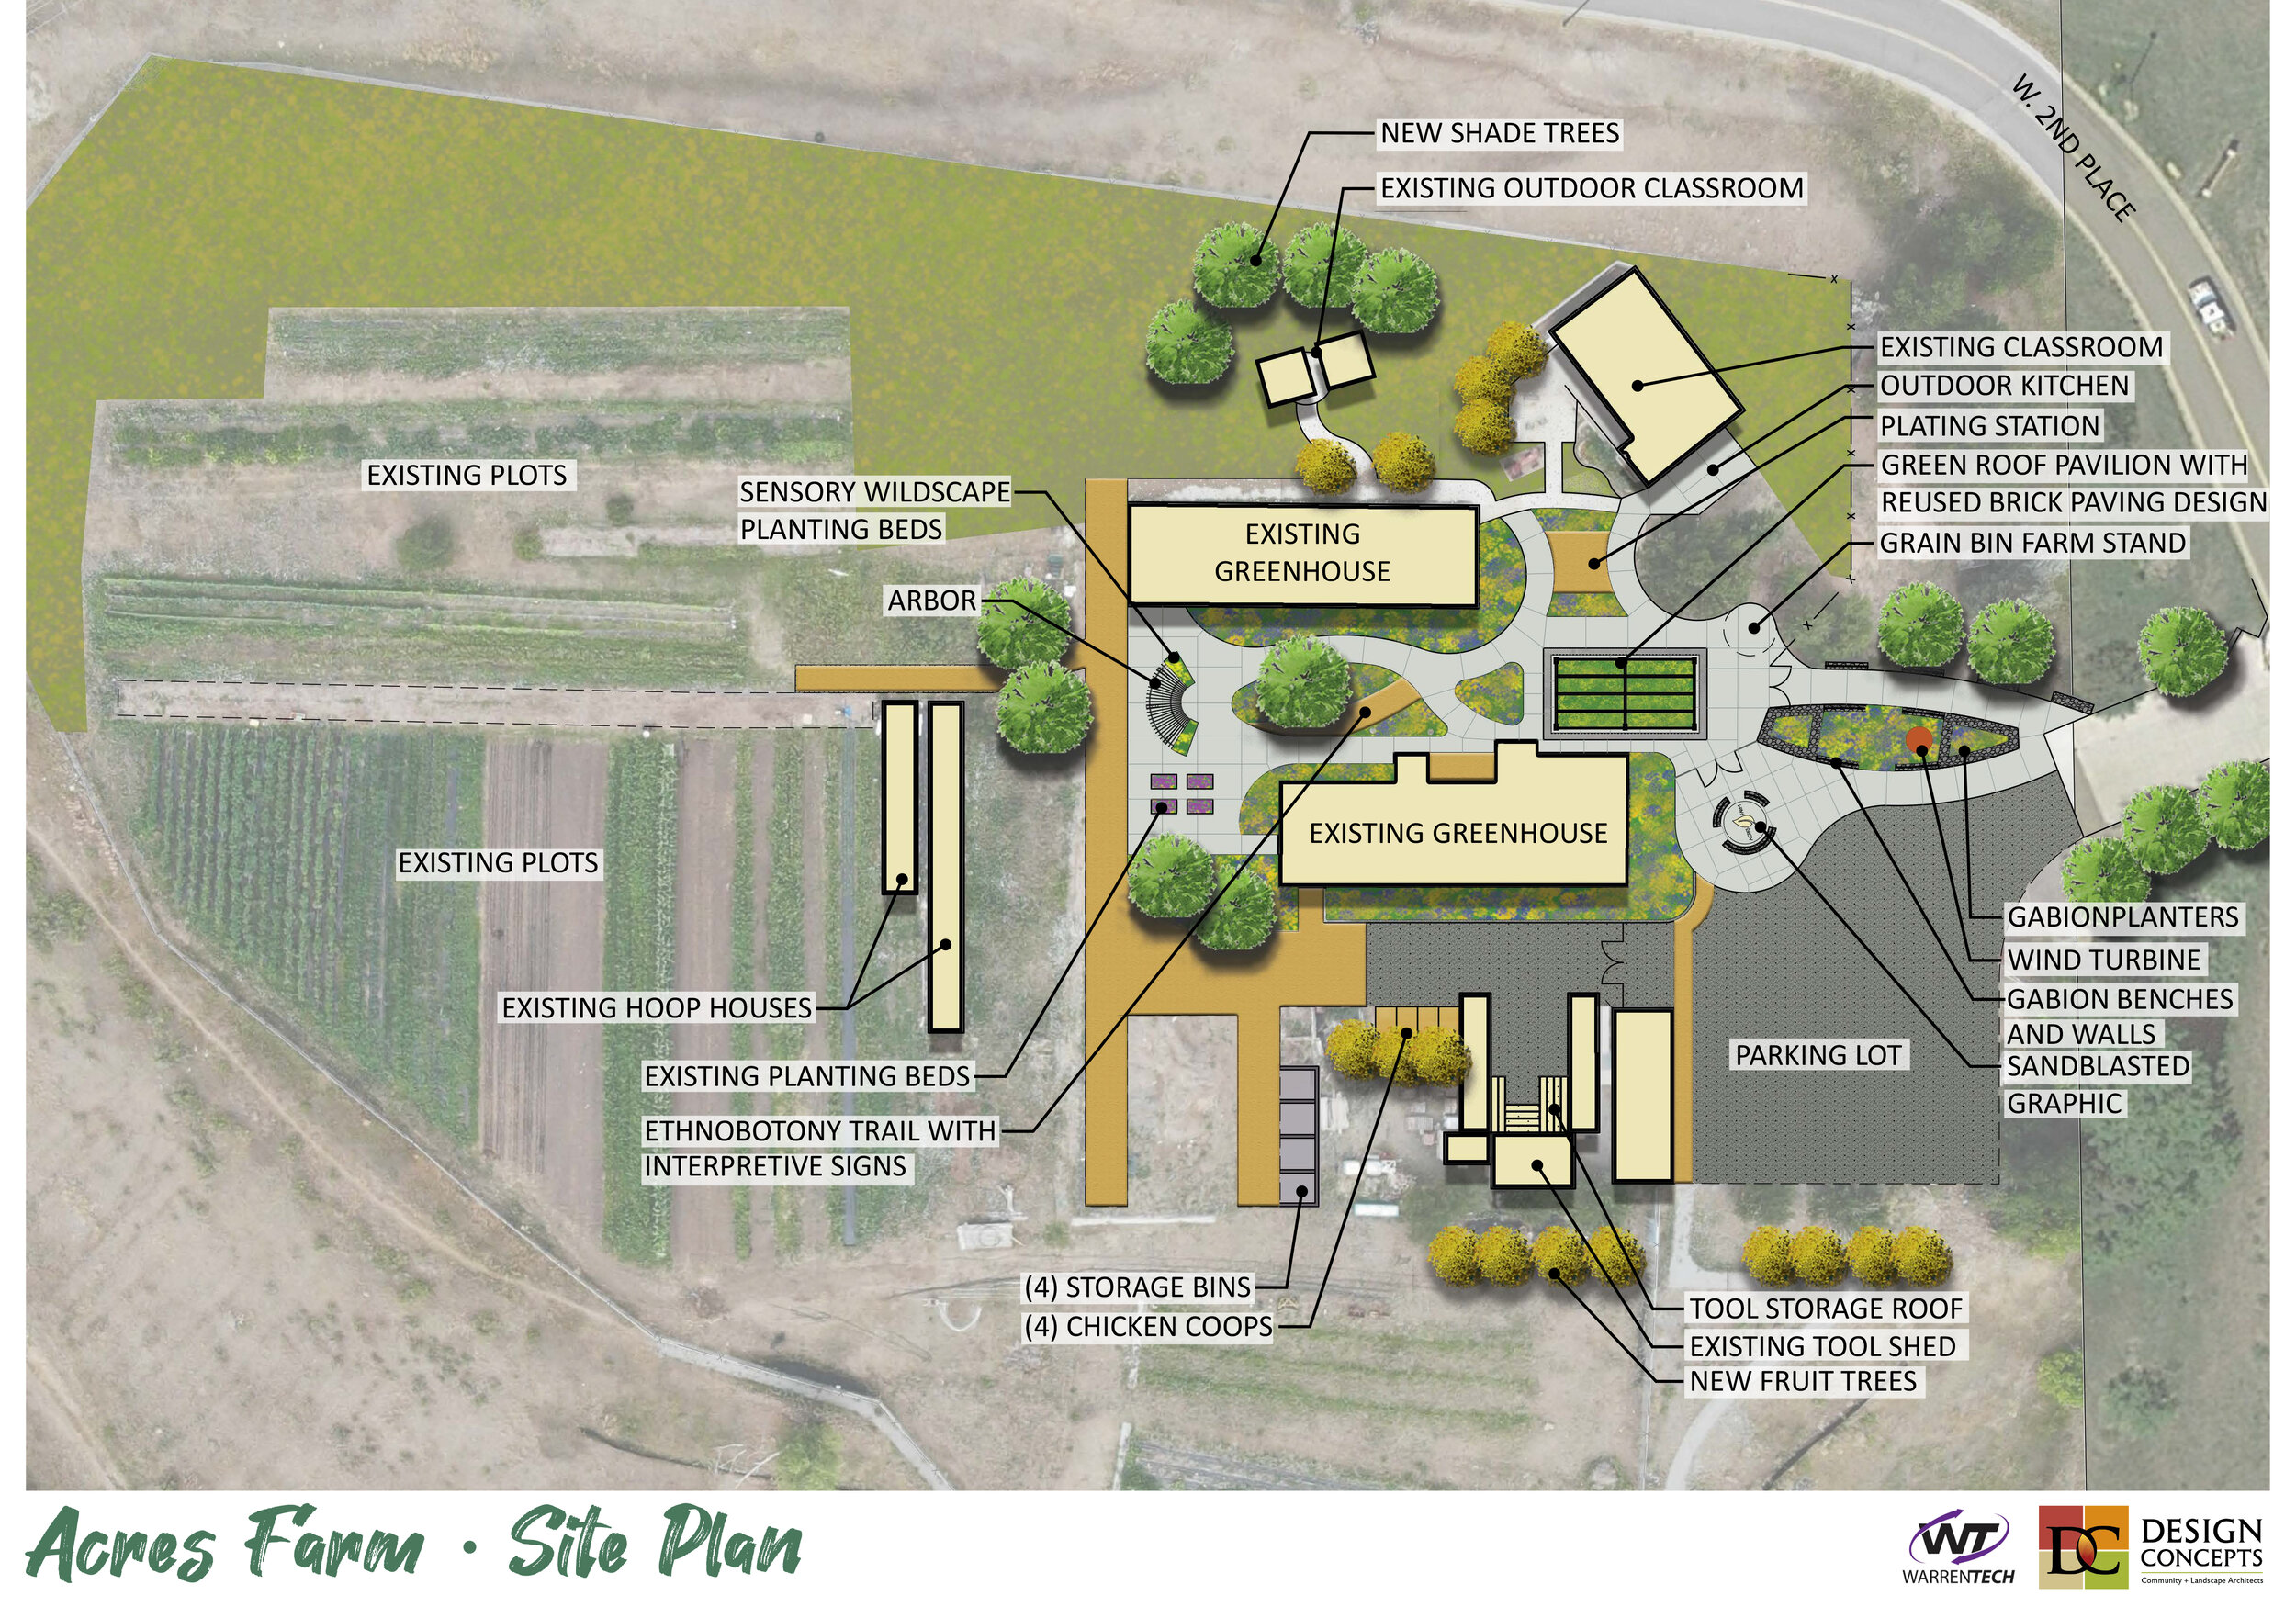 Site Master Plan - Design Concepts helped develop a master plan for the school site with the intent of growth with the program's success